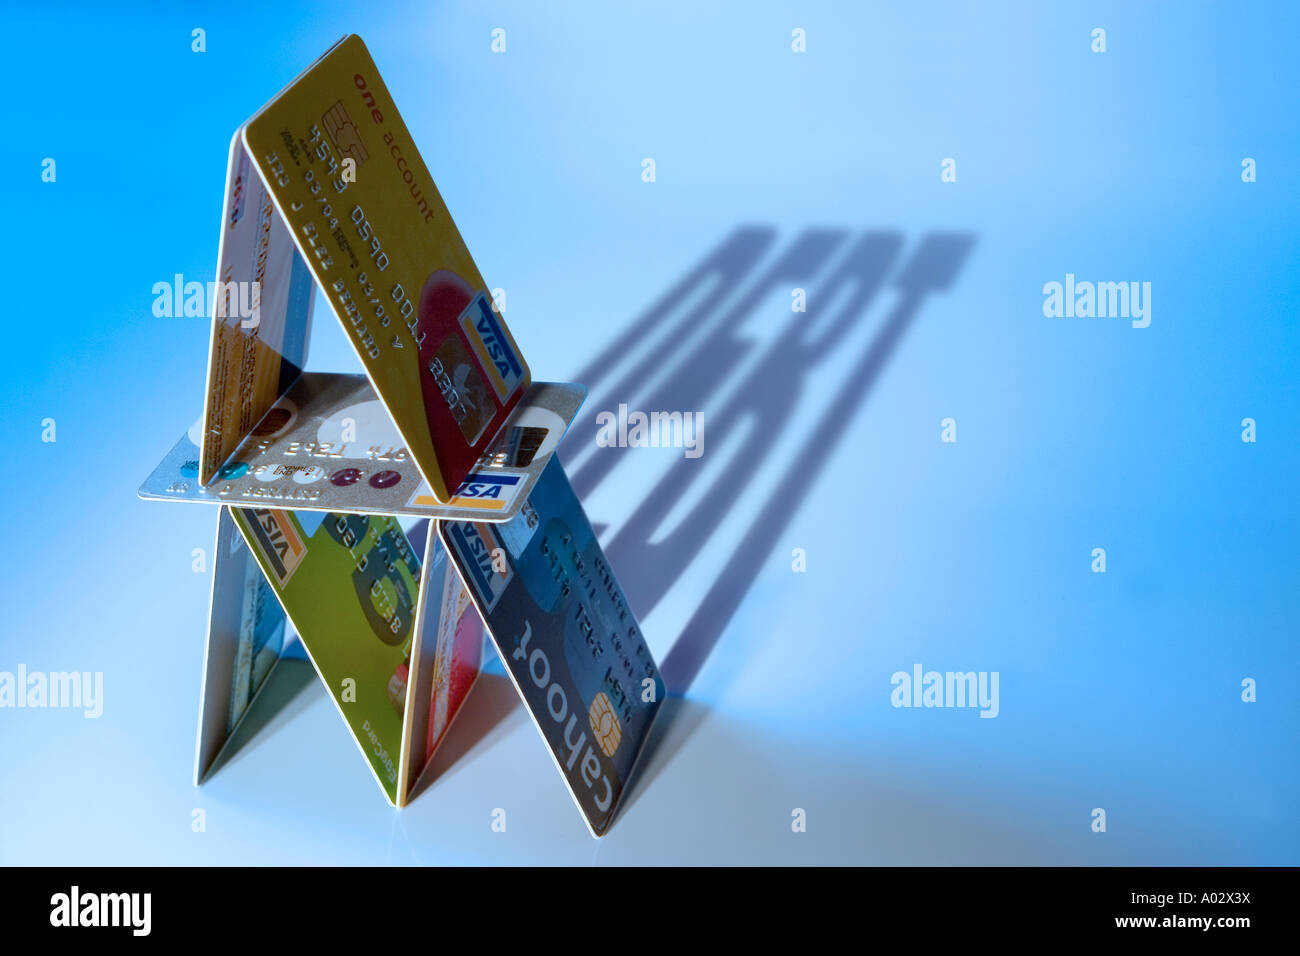 House of credit cards with debt shadow - Stock Image